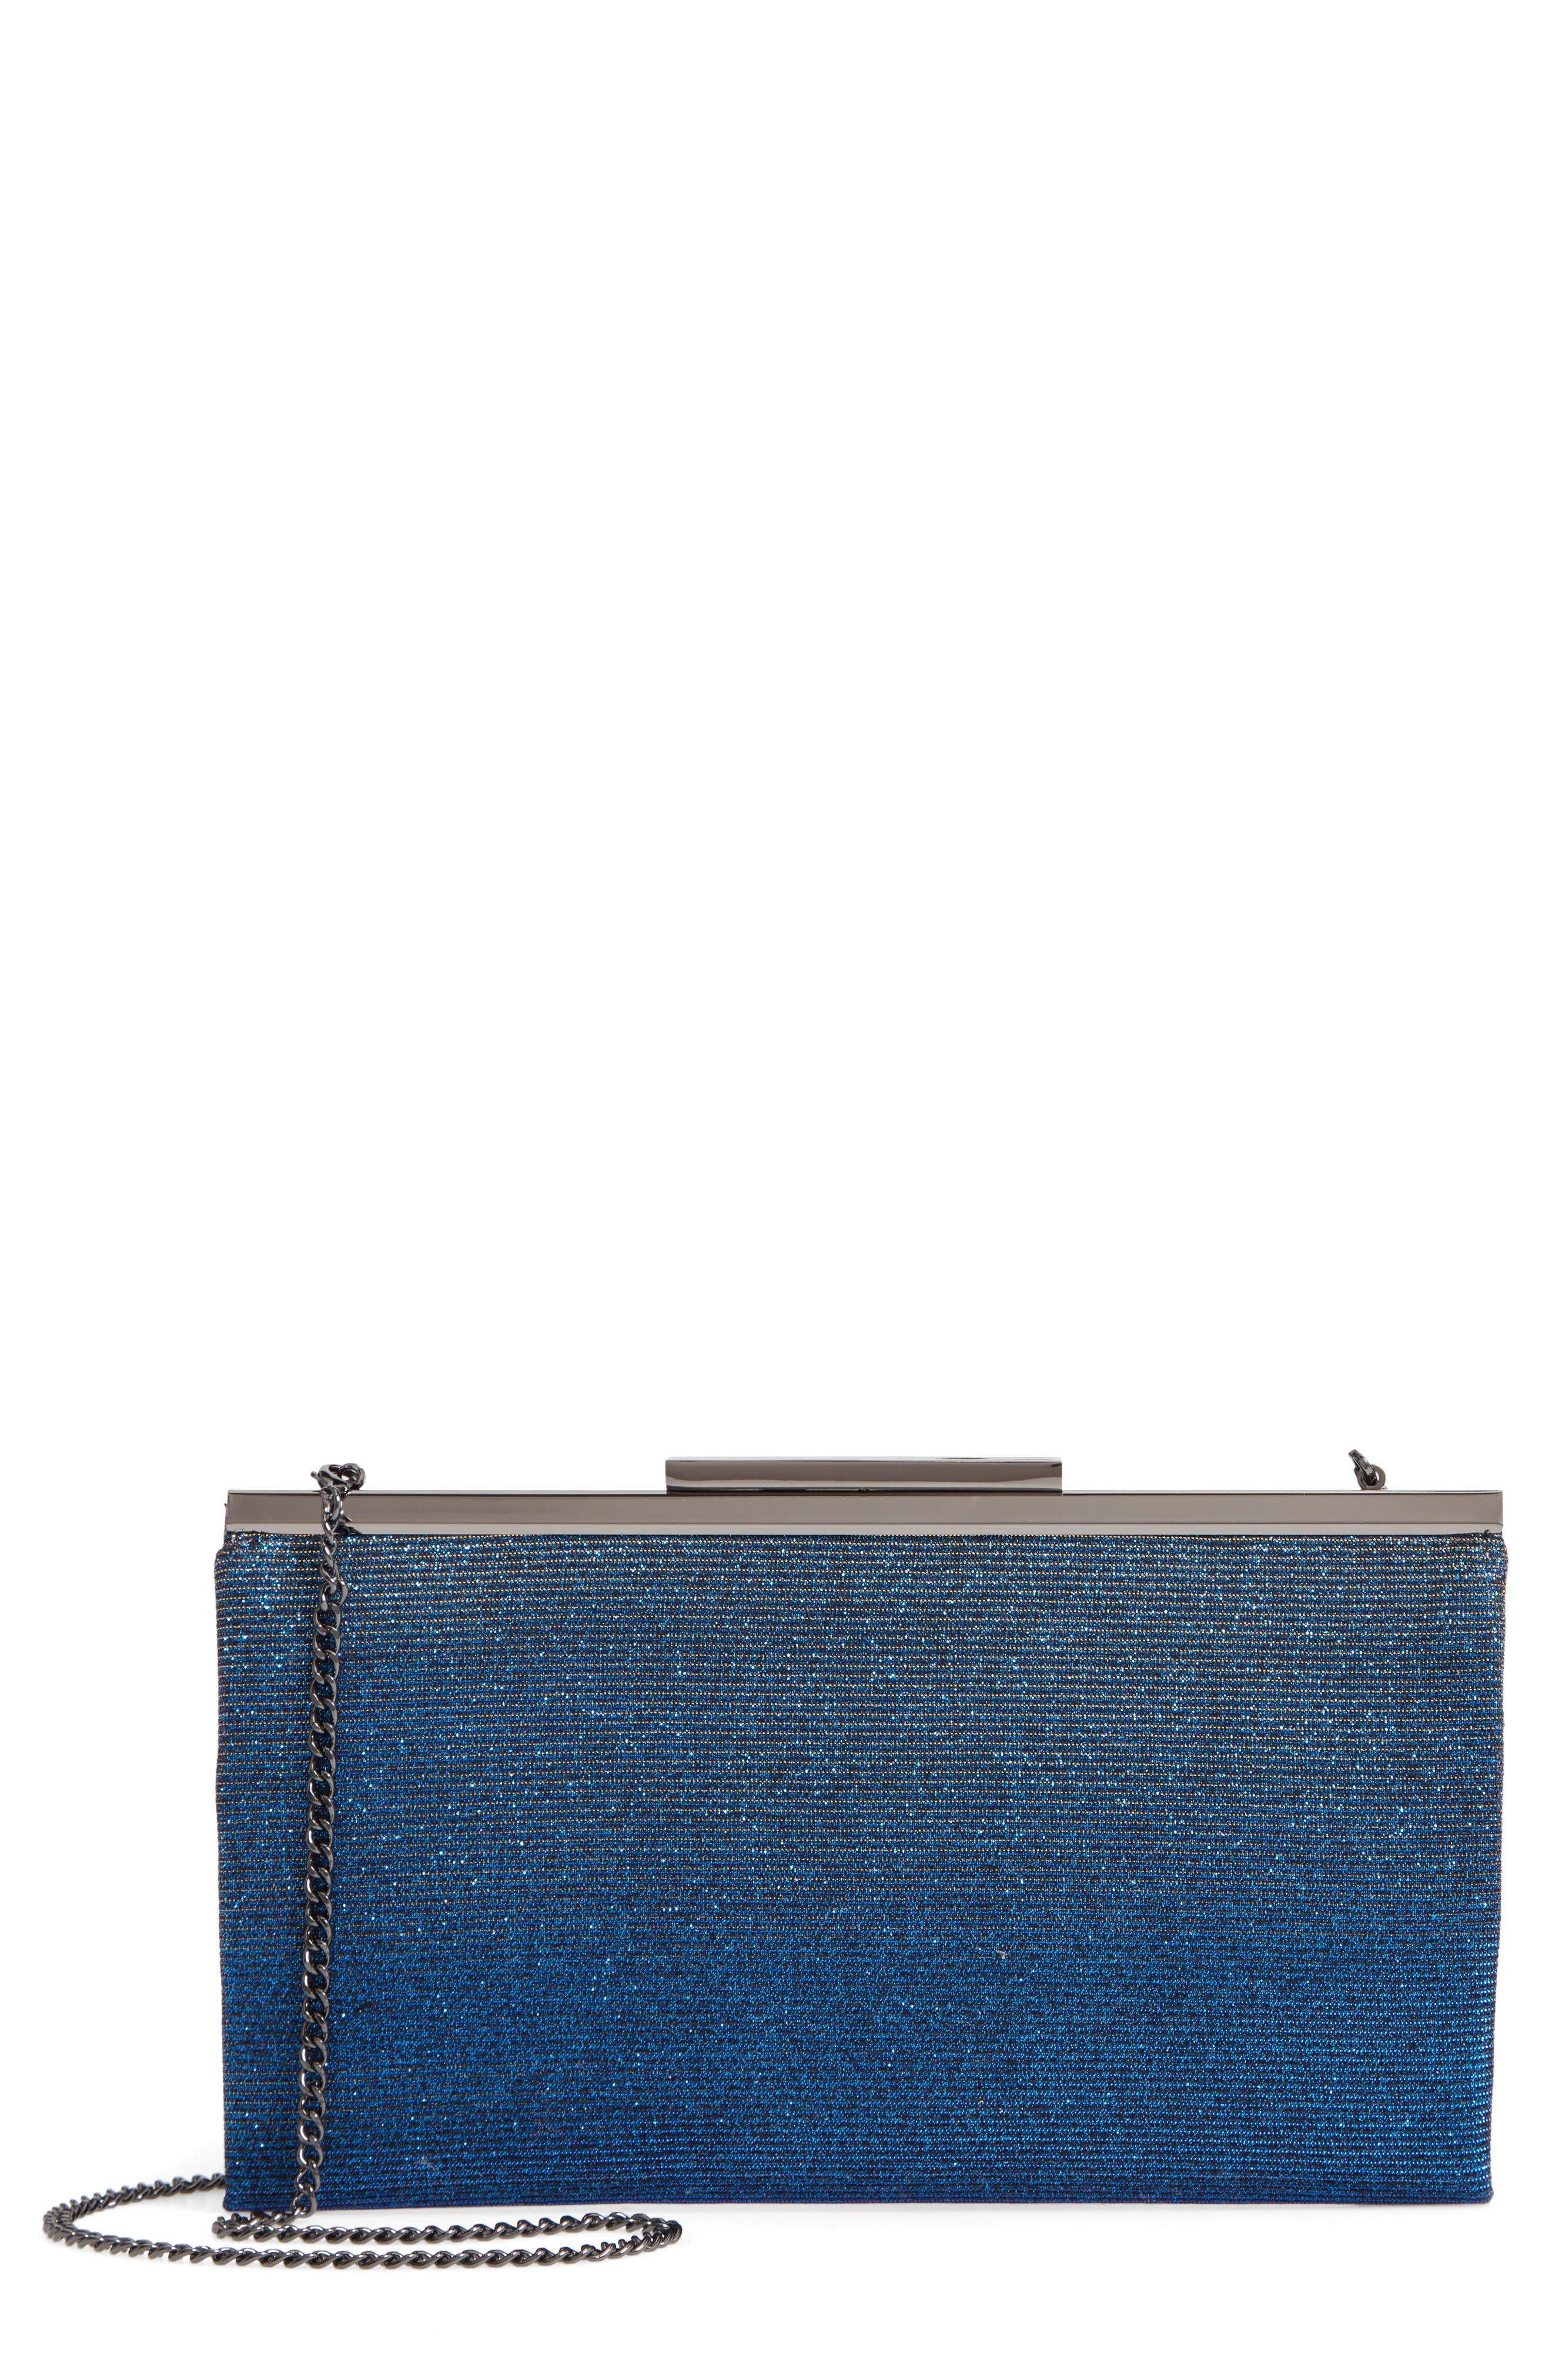 NORDSTROM, Glitter Clutch, Main thumbnail 1, color, BLUE